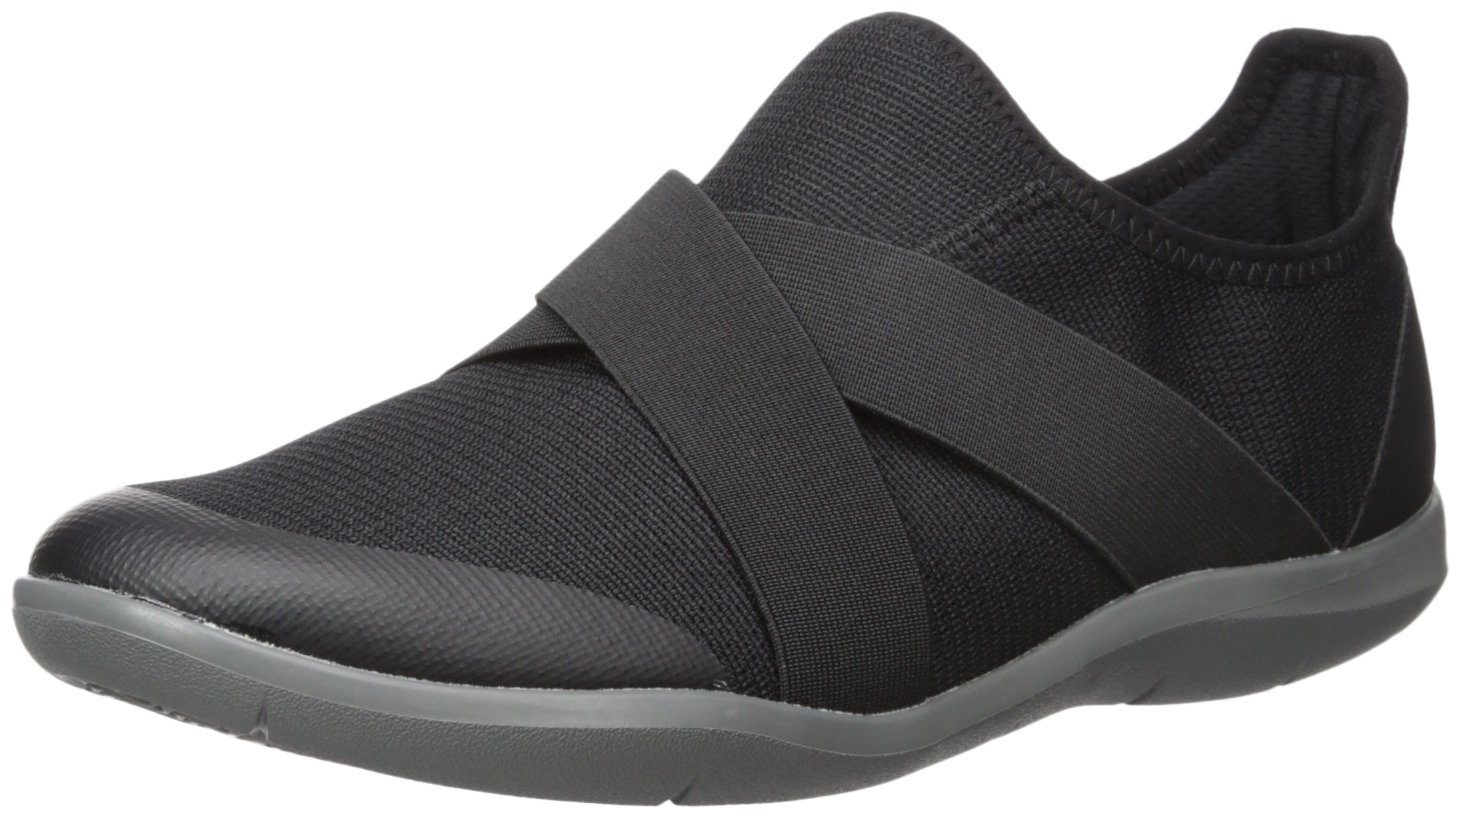 Crocs Women's Swiftwater Cross-Strap Static Flat, Black, 9 M US